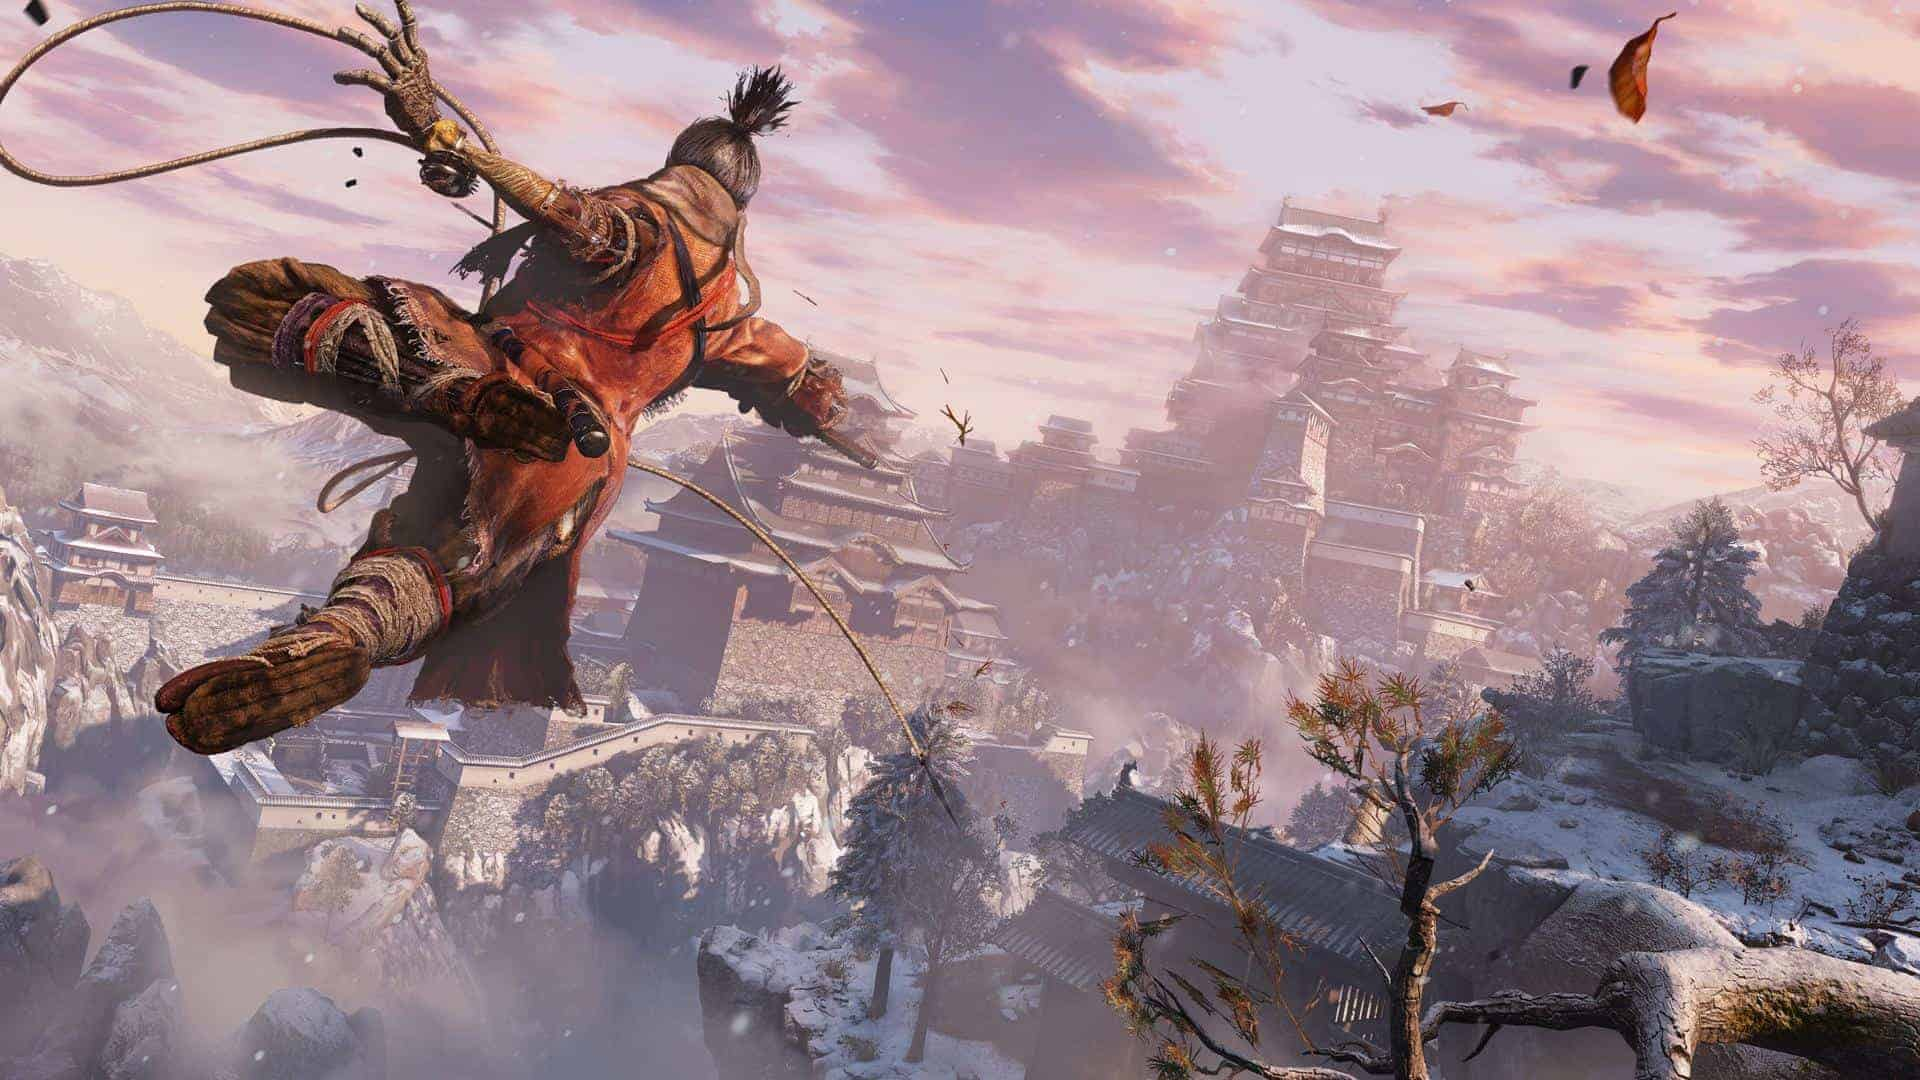 Sekiro Shadows Die Twice PSX 2018 Demo